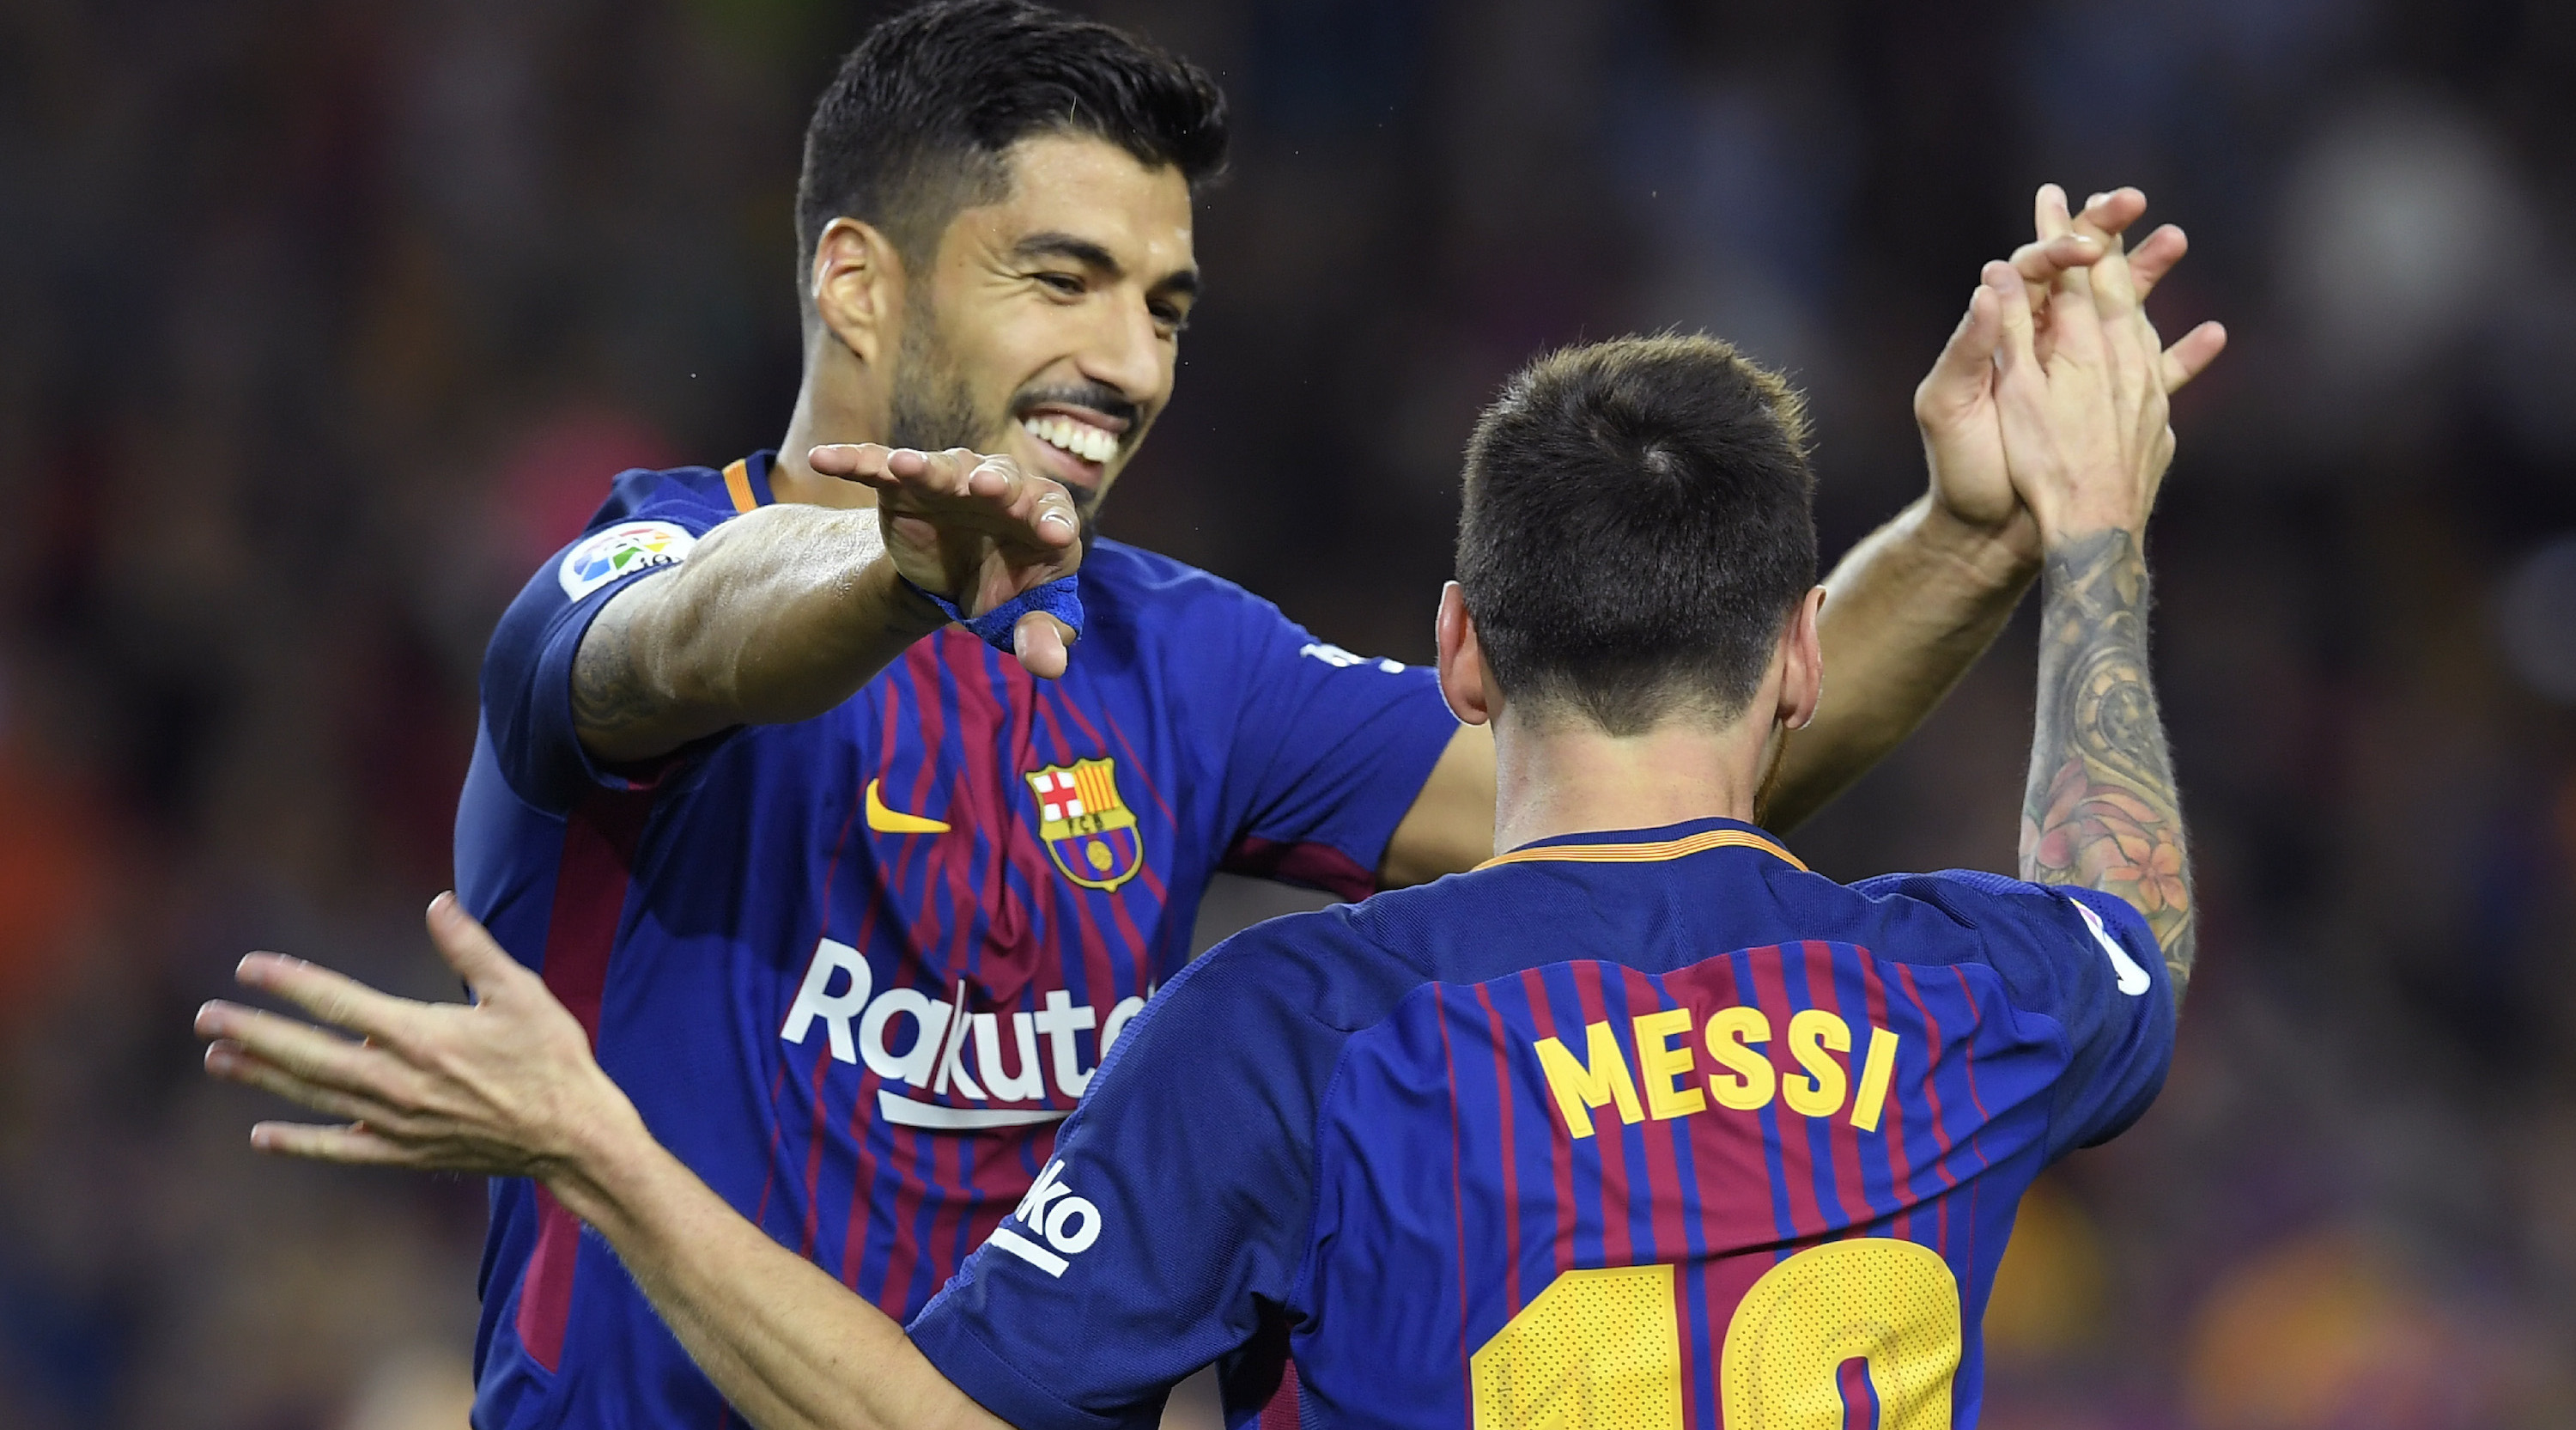 Barcelona's Argentinian forward Lionel Messi (R) celebrates with Barcelona's Uruguayan forward Luis Suarez after scoring during the Spanish Liga football match Barcelona vs Espanyol at the Camp Nou stadium in Barcelona on September 9, 2017. / AFP PHOTO / LLUIS GENE (Photo credit should read LLUIS GENE/AFP/Getty Images)